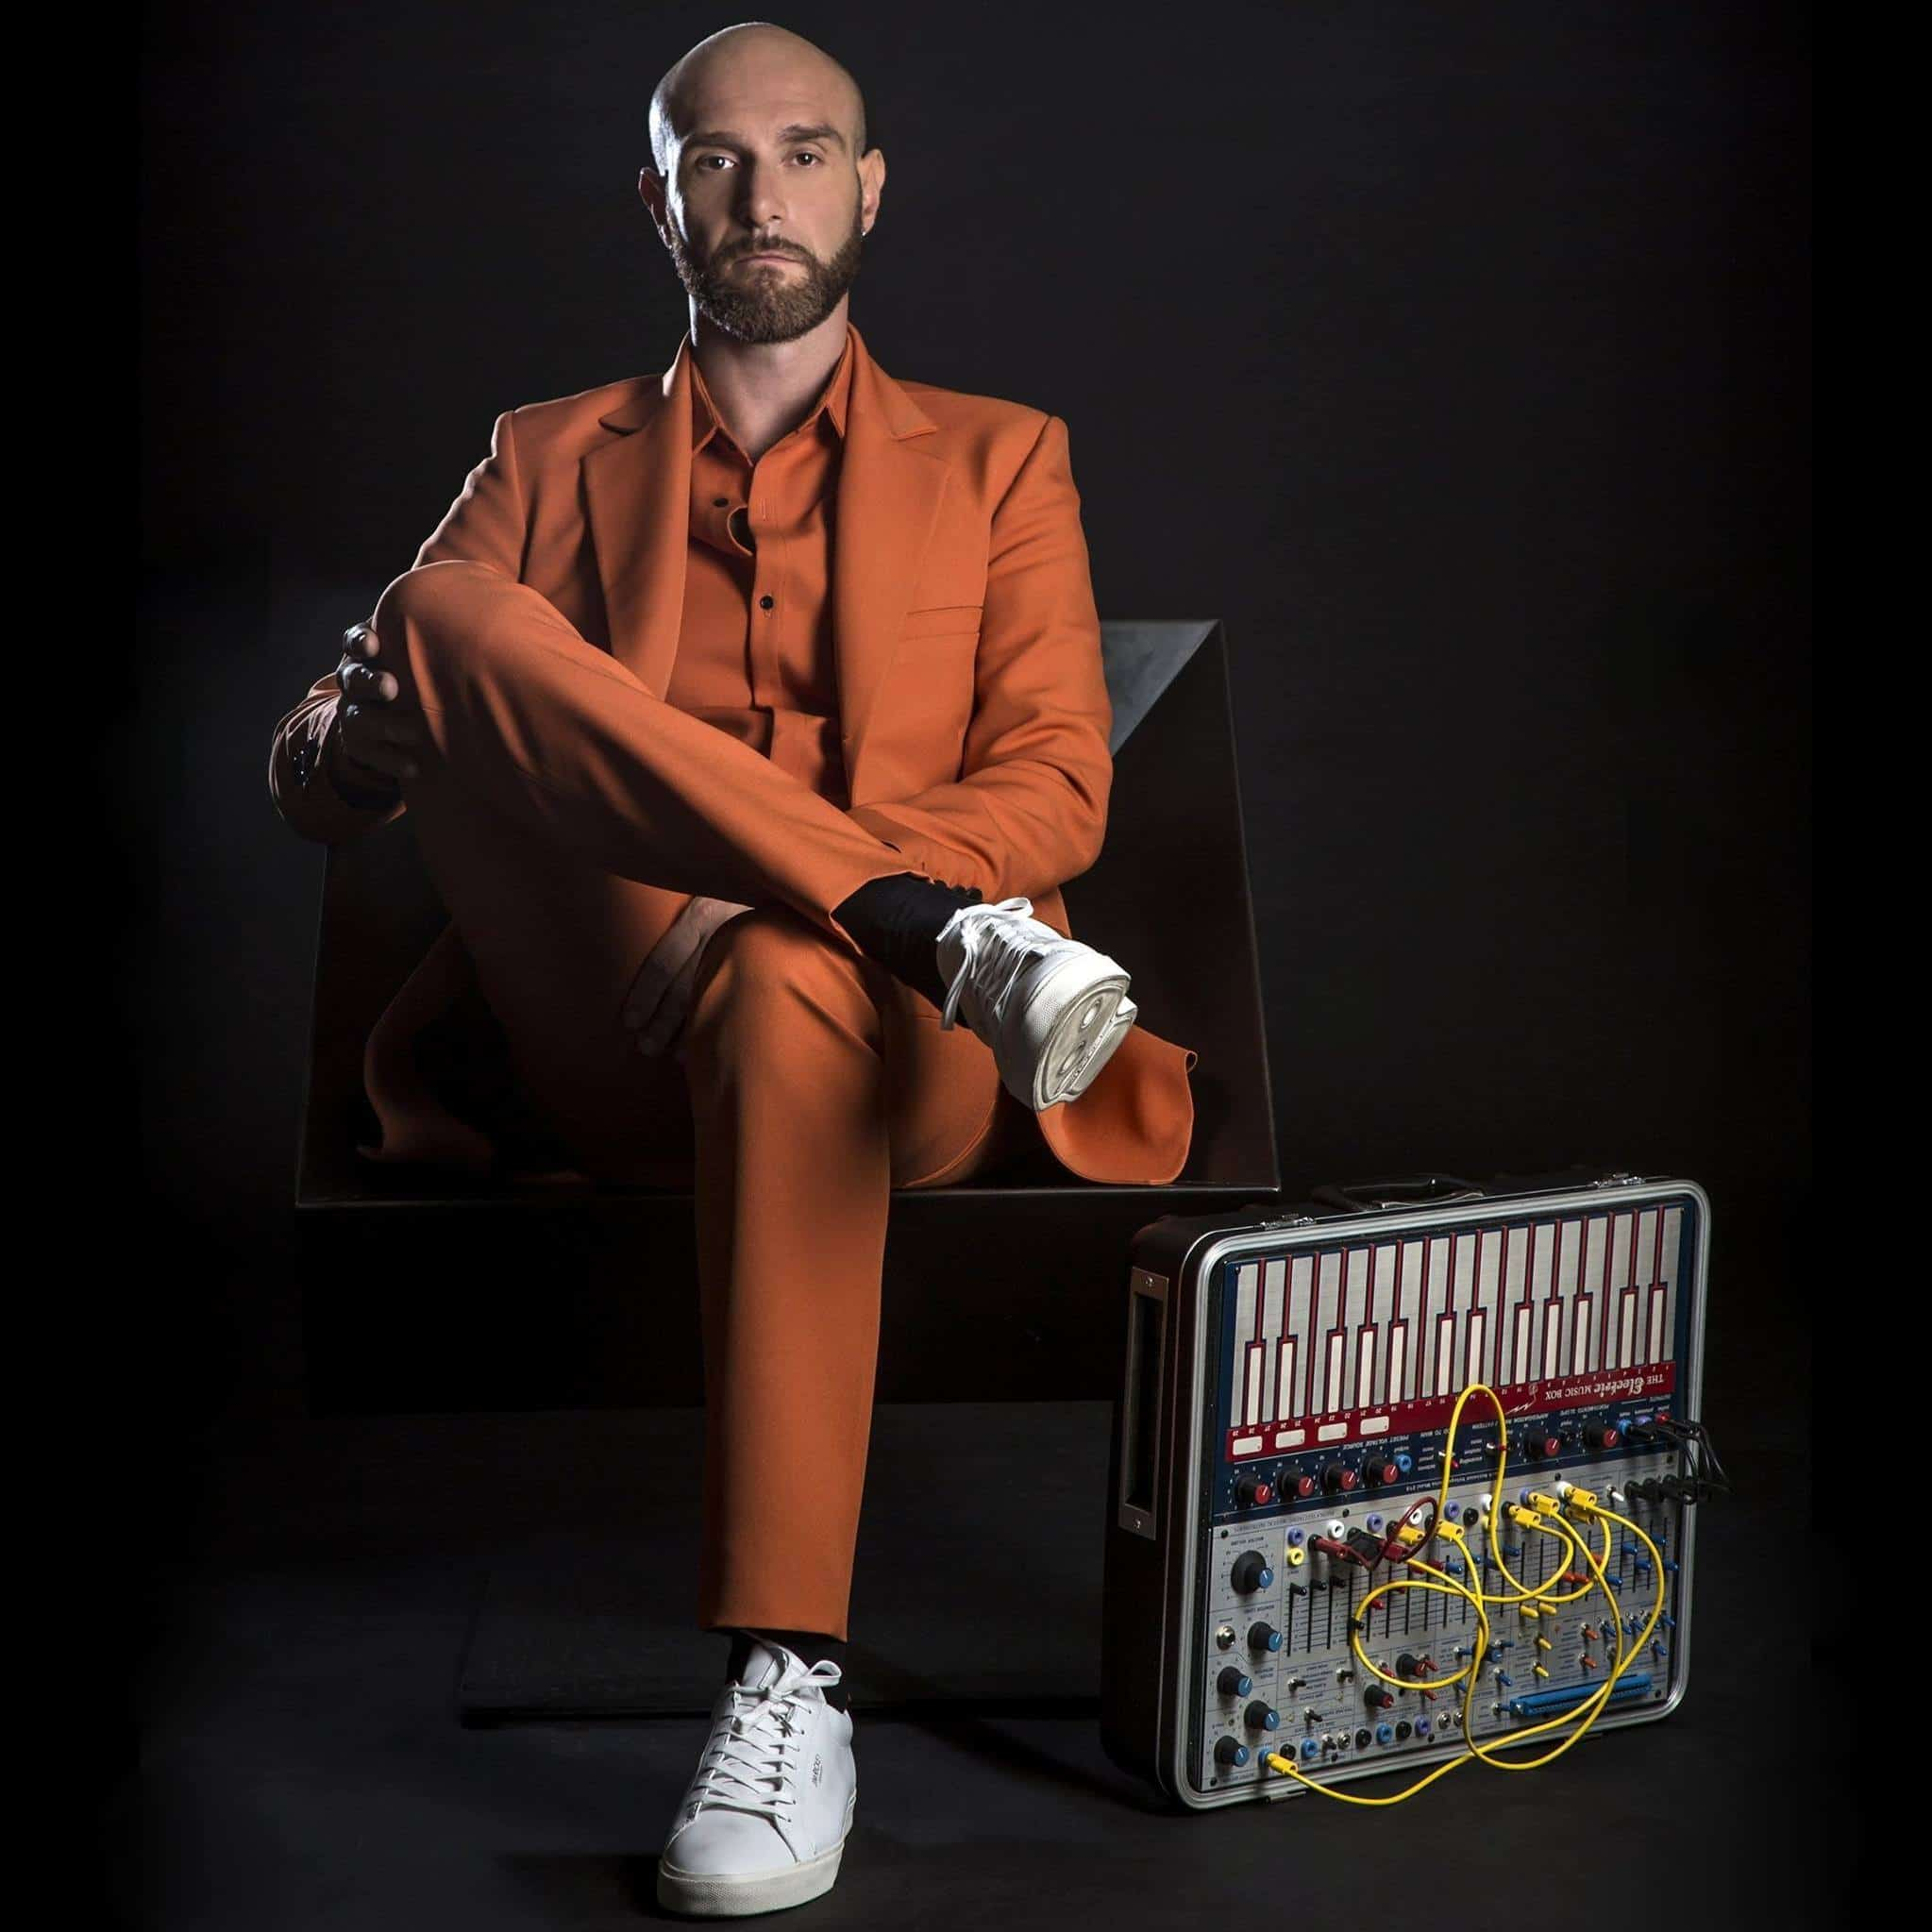 French legend Vitalic is back with release of Voyager Deluxe album & US tour